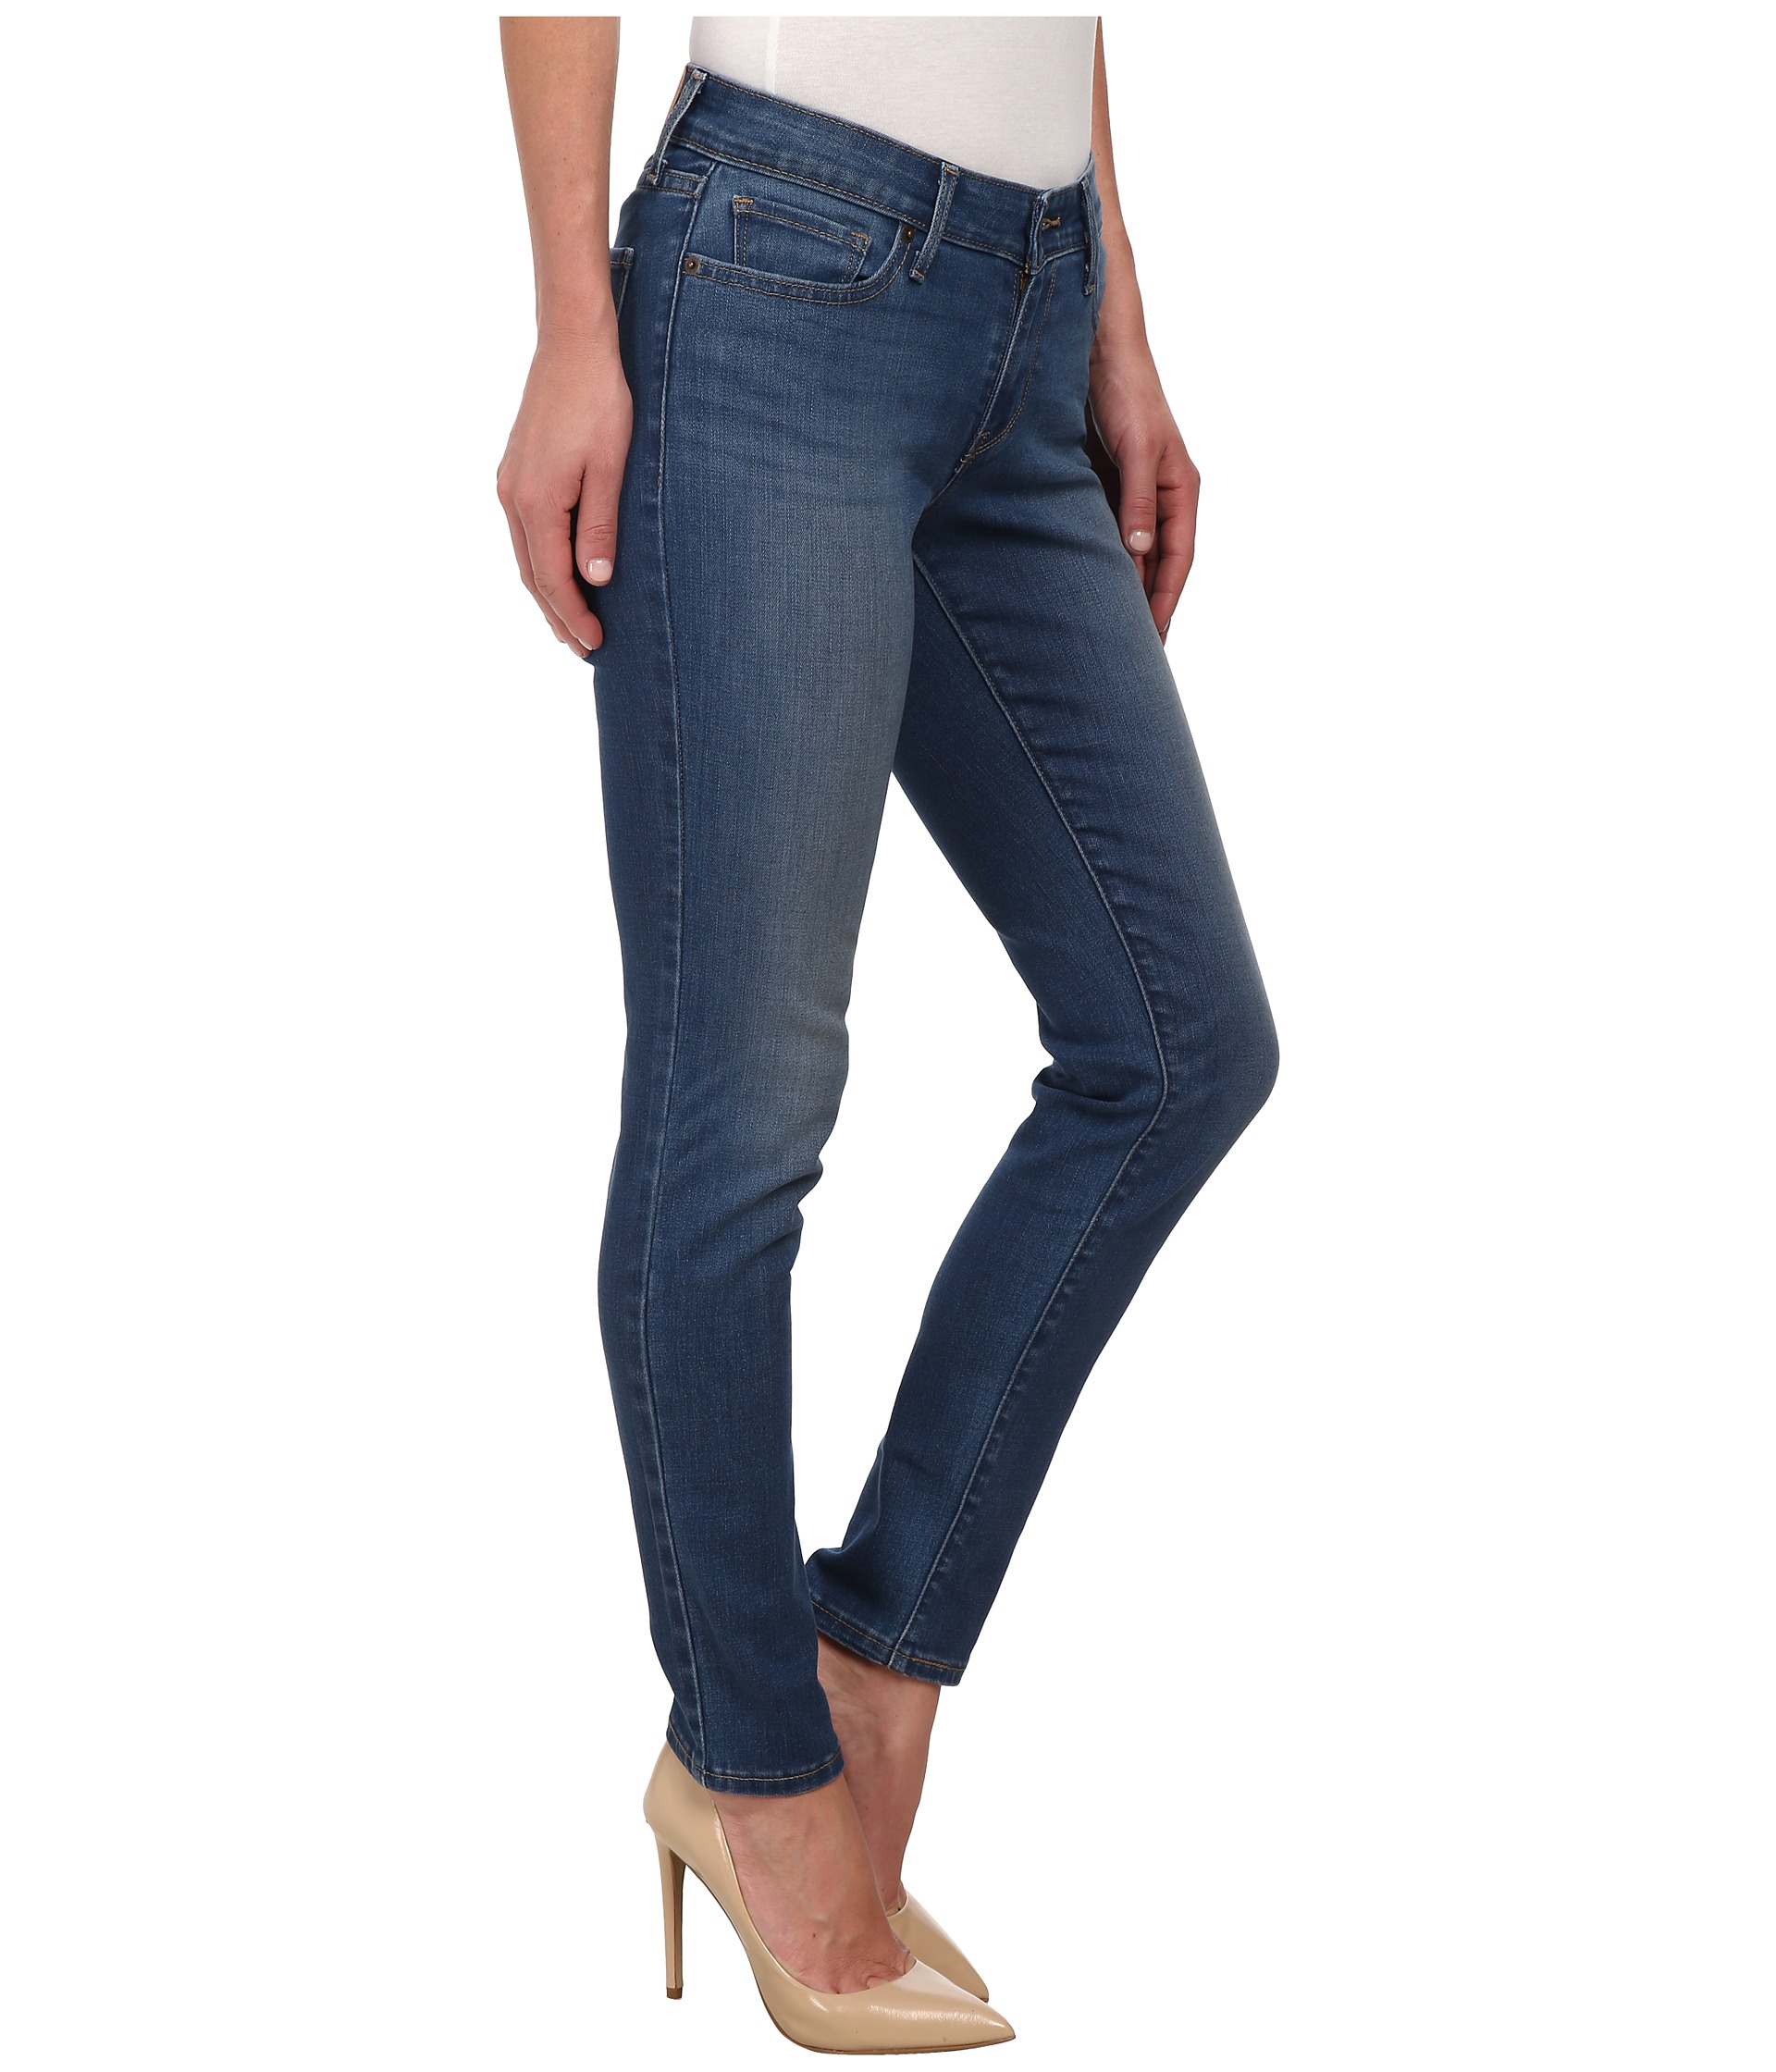 Taller, curvy women can look fabulous in cropped jeans, which will accentuate your hourglass curves. Skip the skinniest crops and capri styles, though, as both .